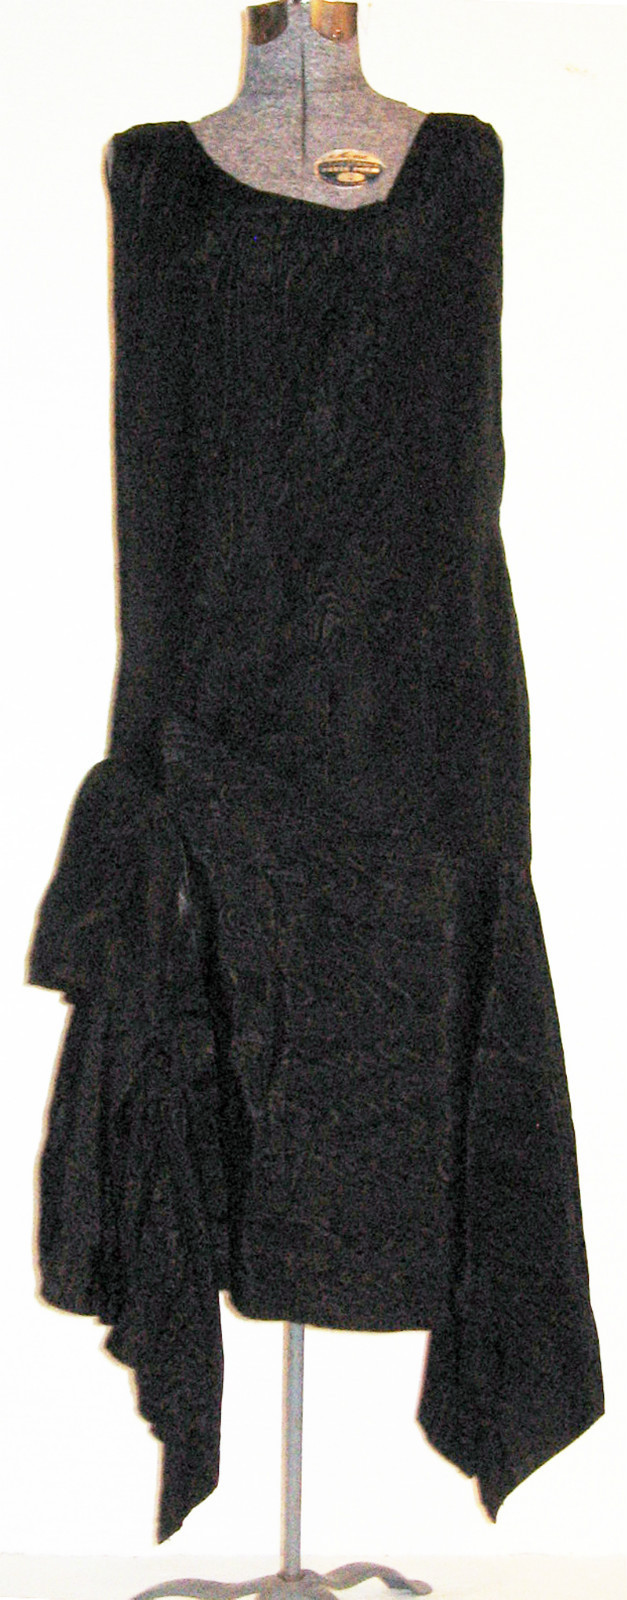 All The Pretty Dresses: That Little Black Dress, 1920's Style